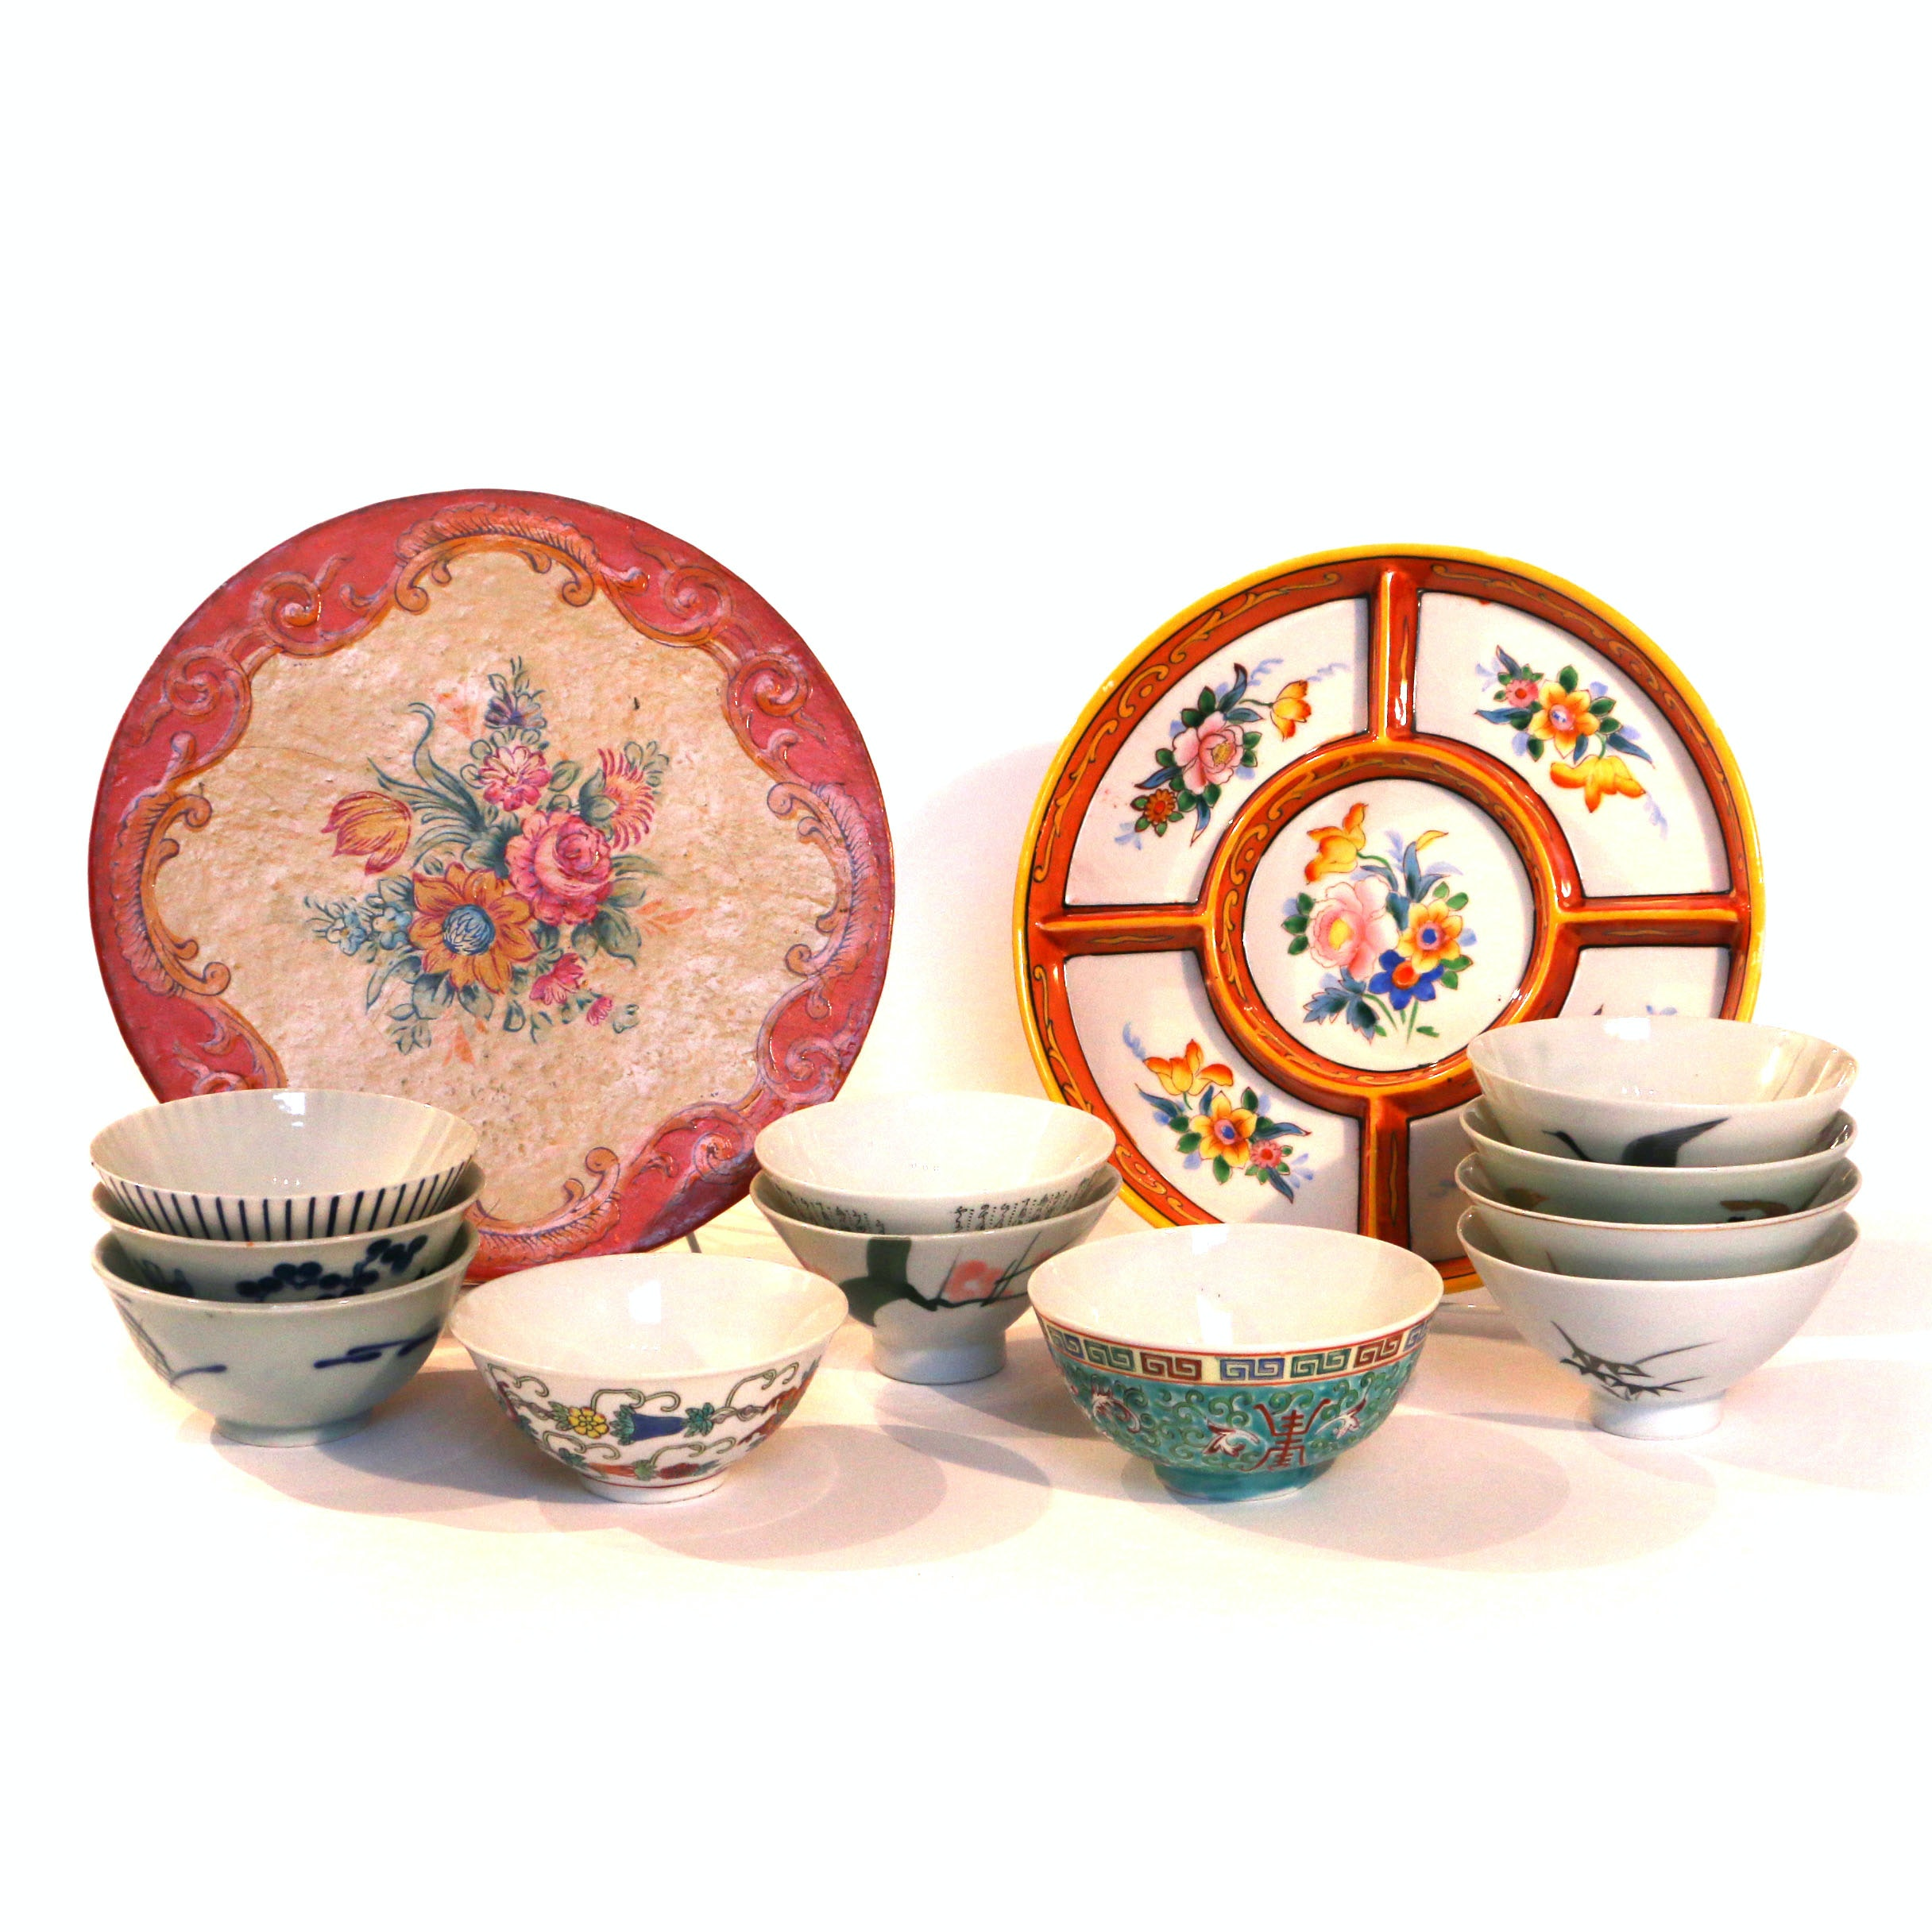 East Asian Rice Bowls and Serveware